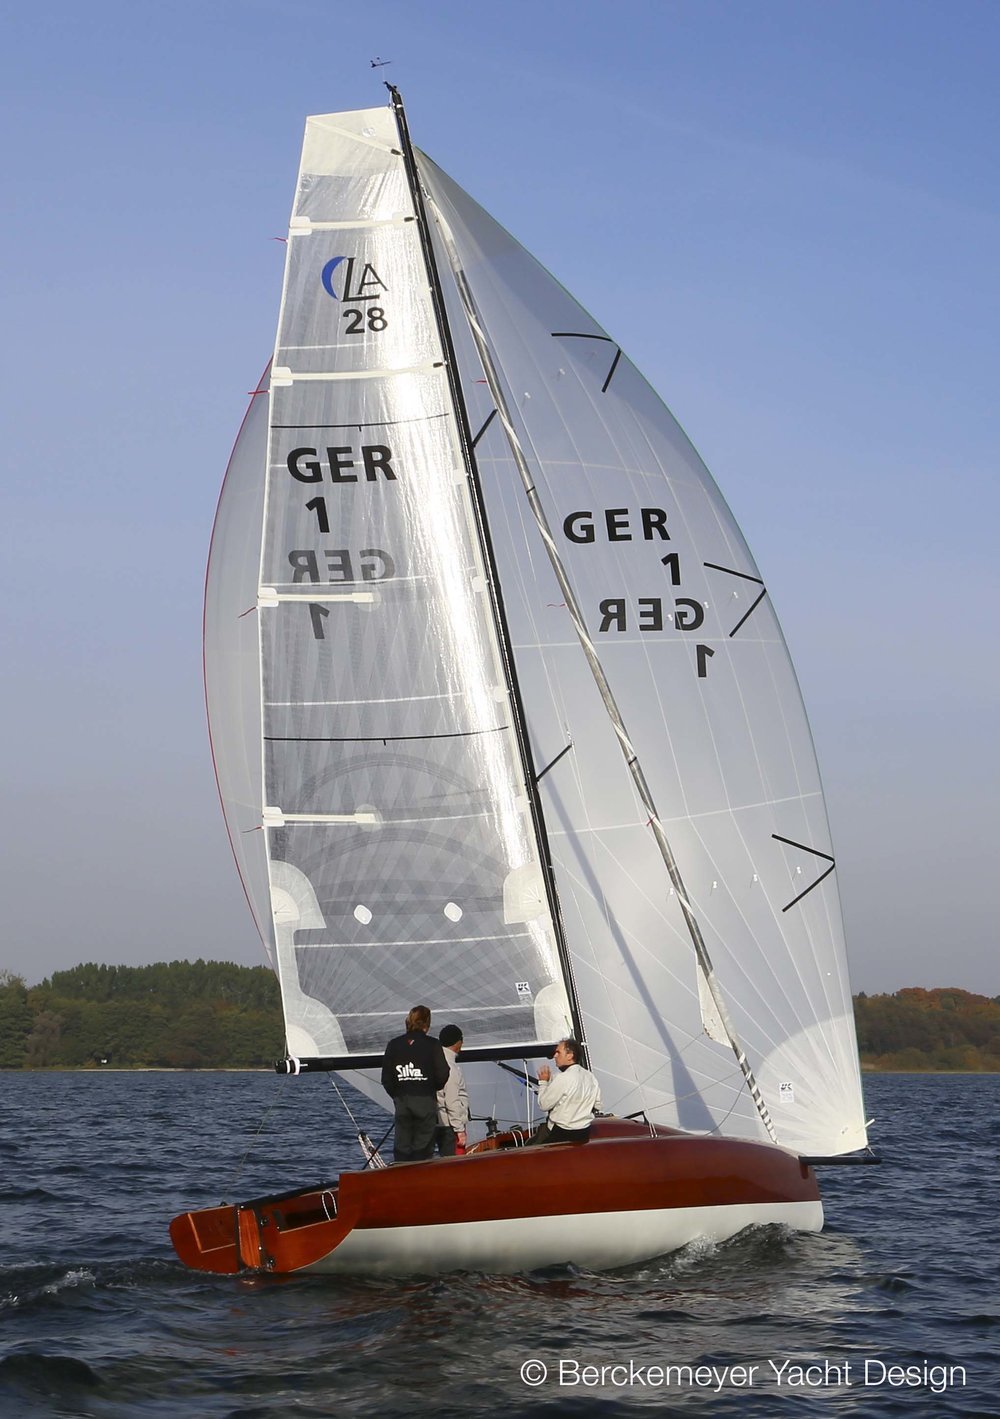 A Square-Top X-Drive mainsail on a 28-foot daysailer designed by   Berkemeyer Yacht Design  .